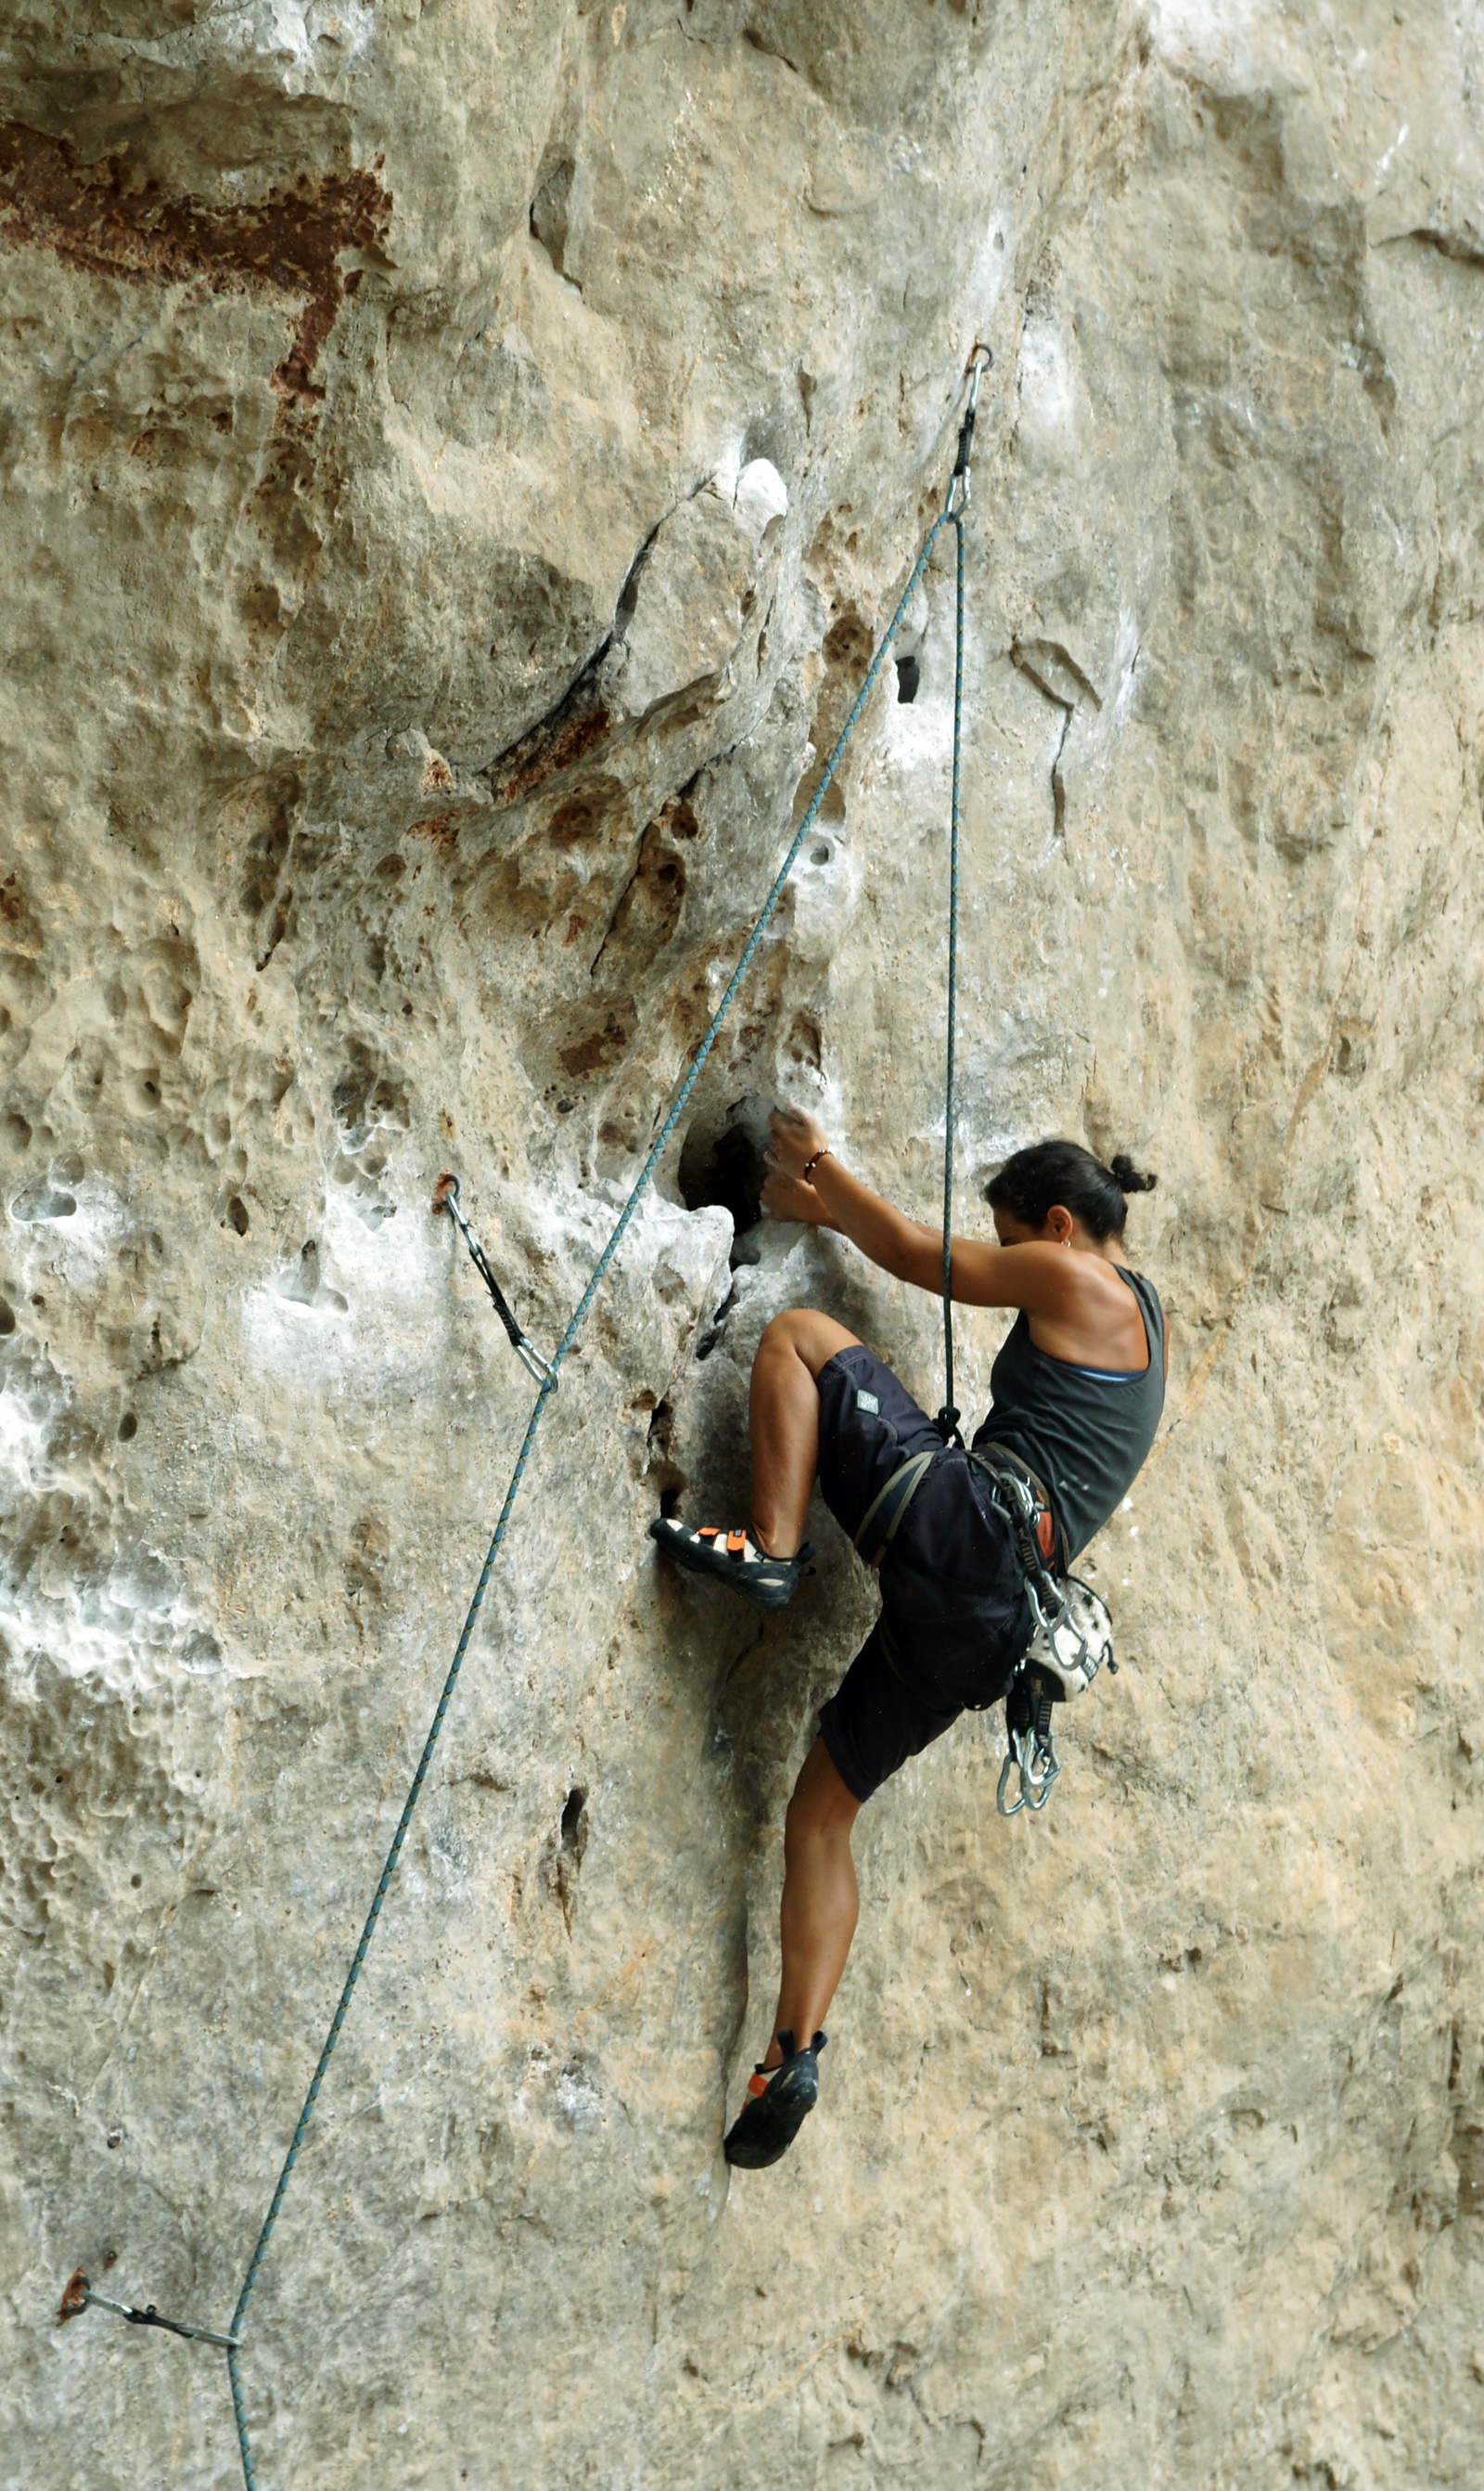 a story of climbing on the mount cheguva Climbing experience essay examples 2 total results how did i end up here 623 words 1 page a story of climbing on the mount.